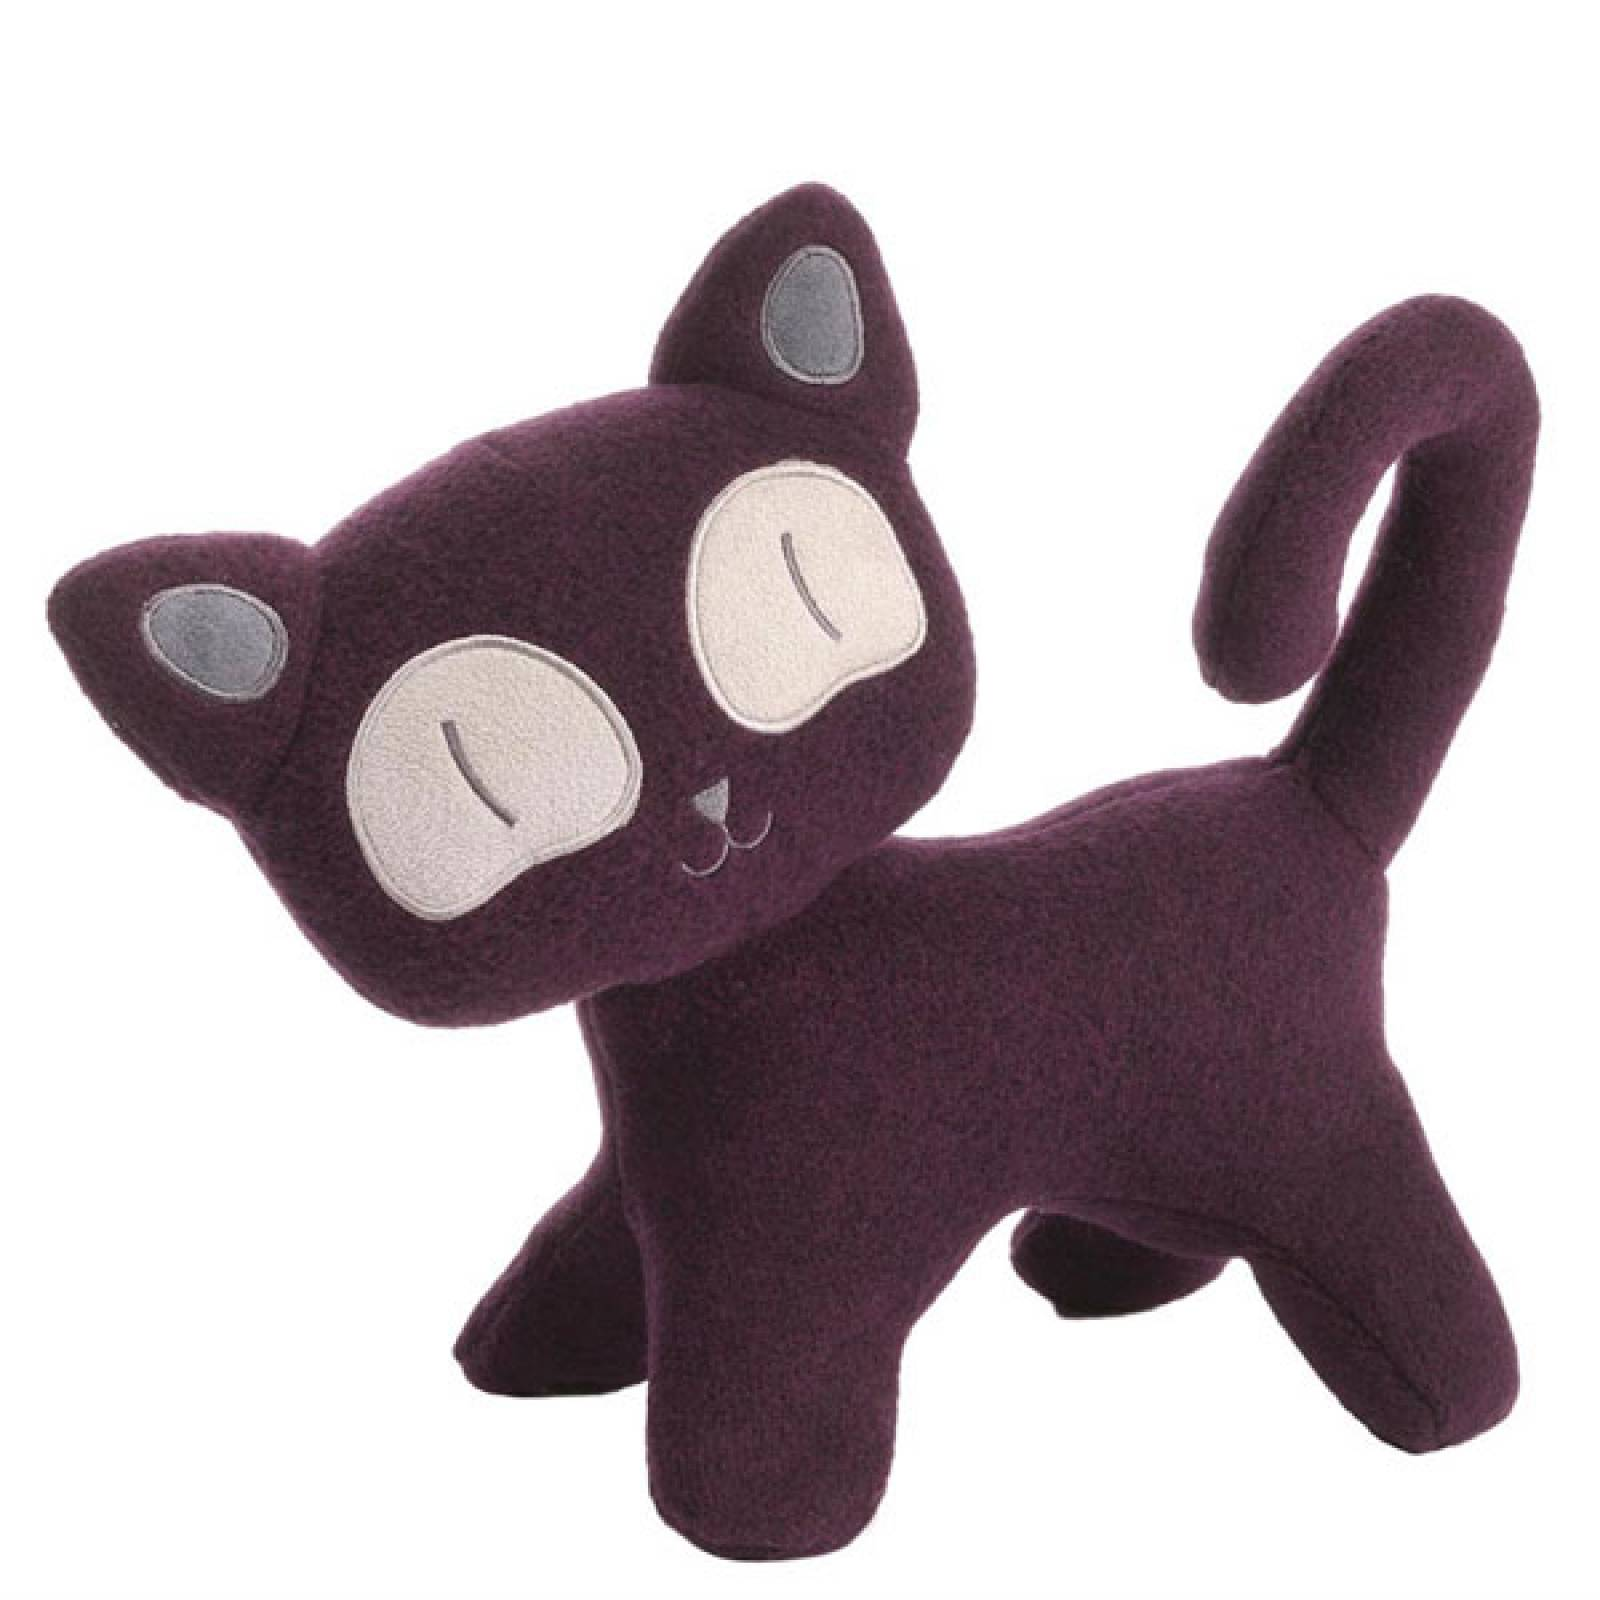 Hasumi Cat Purple Soft Toy 1yr+ thumbnails